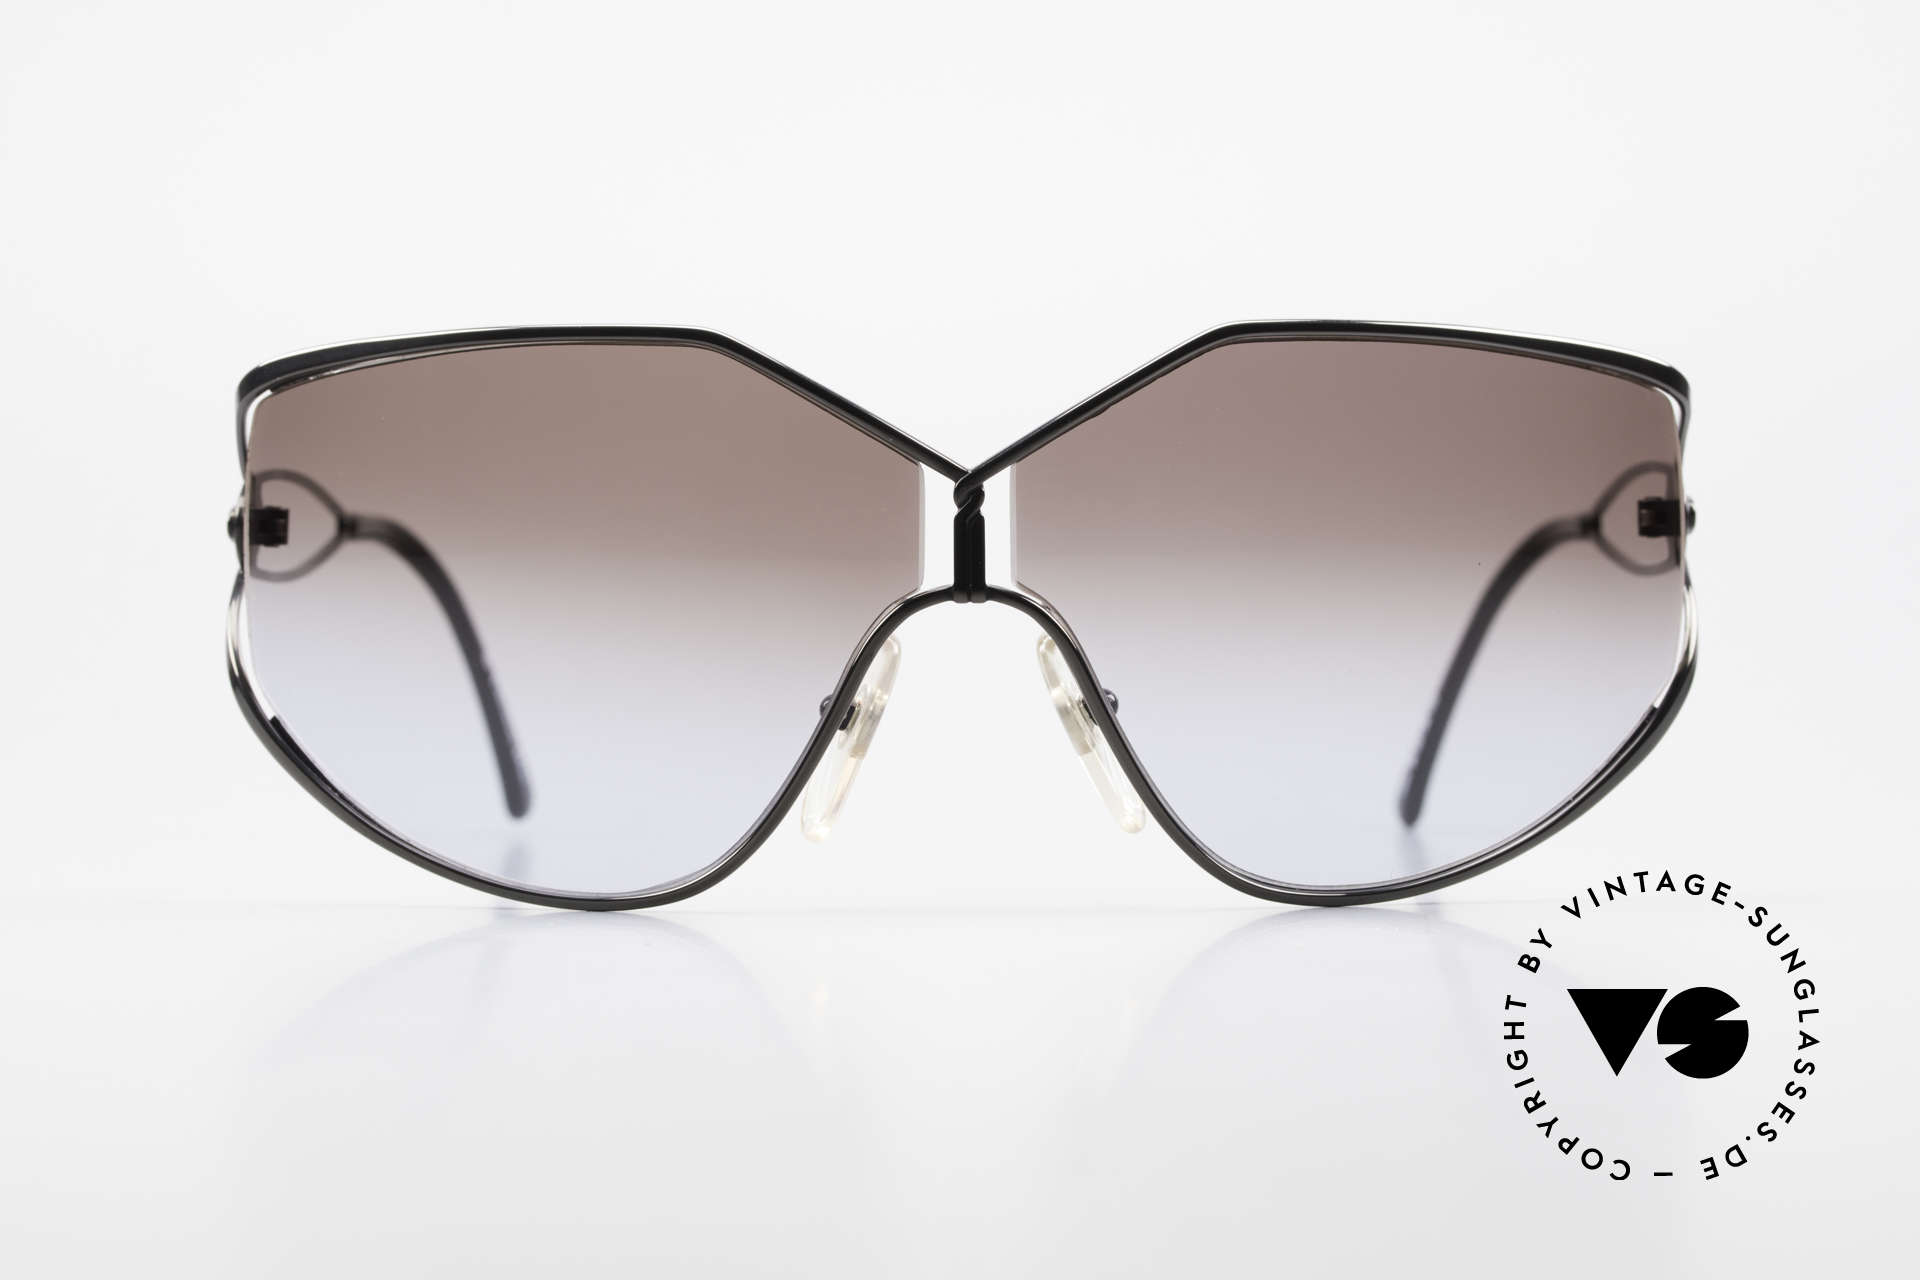 Christian Dior 2345 Ladies Designer Sunglasses 90s, classic, charming and elegant french design, Made for Women